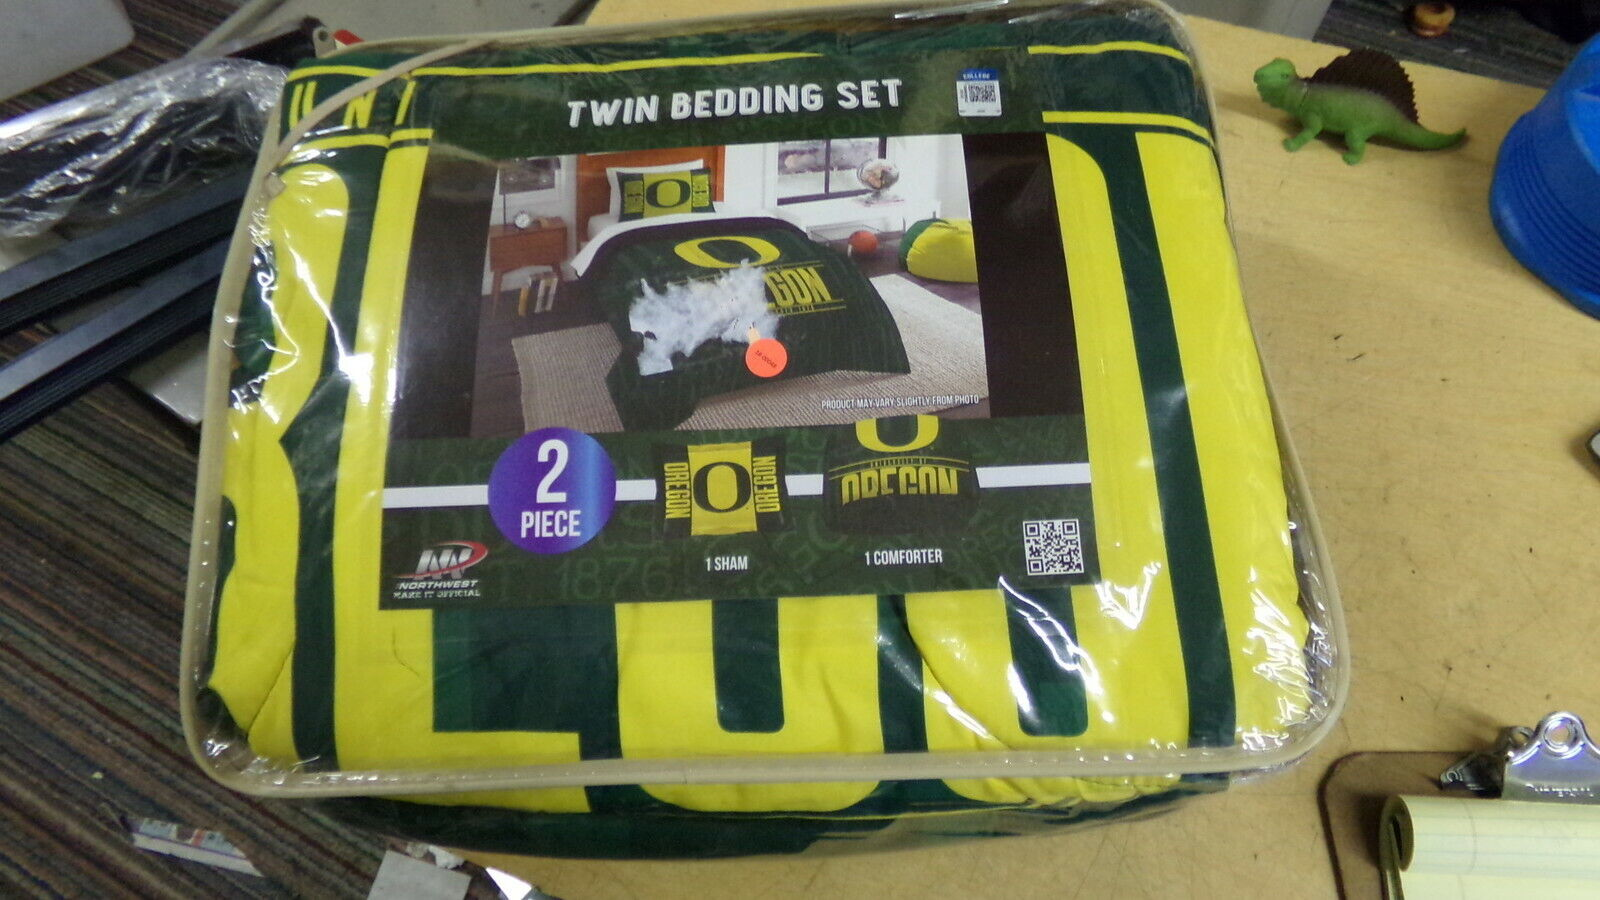 NEW Genuine College Product. Oregon Bed Comforter, NC3131, 64  x 86